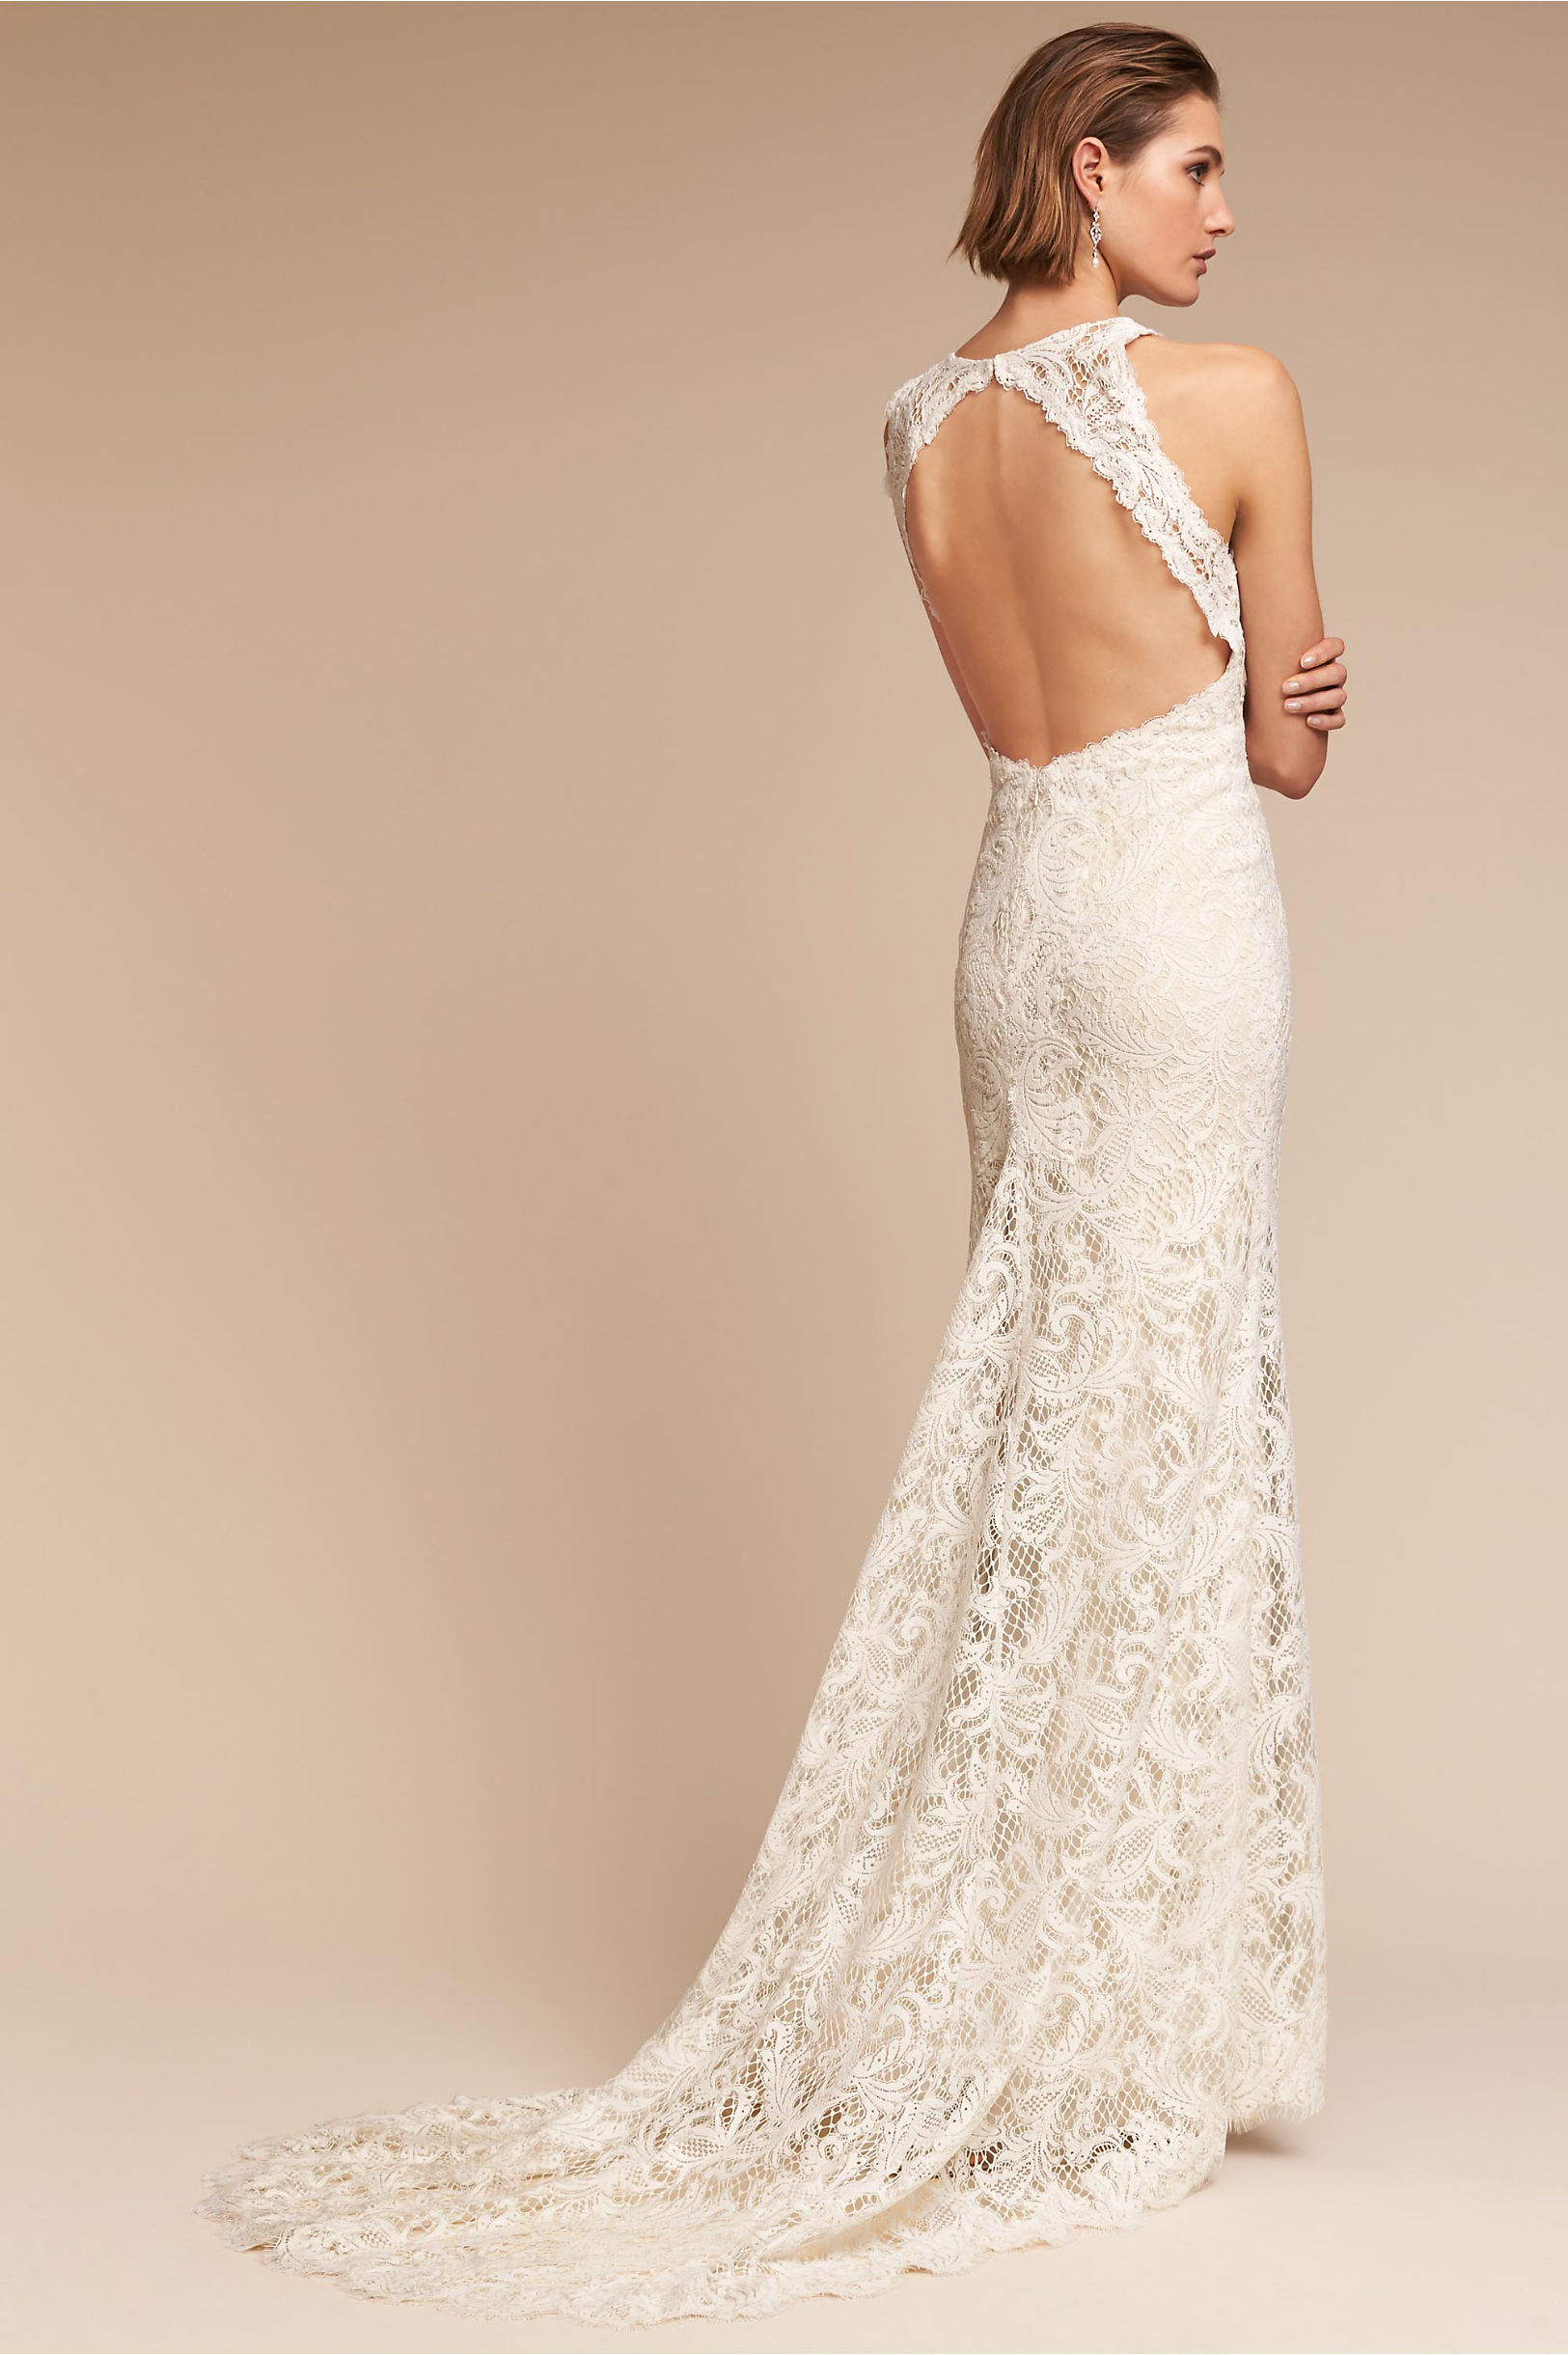 pinterest backless wedding dress backless wedding dresses Ventura Gown